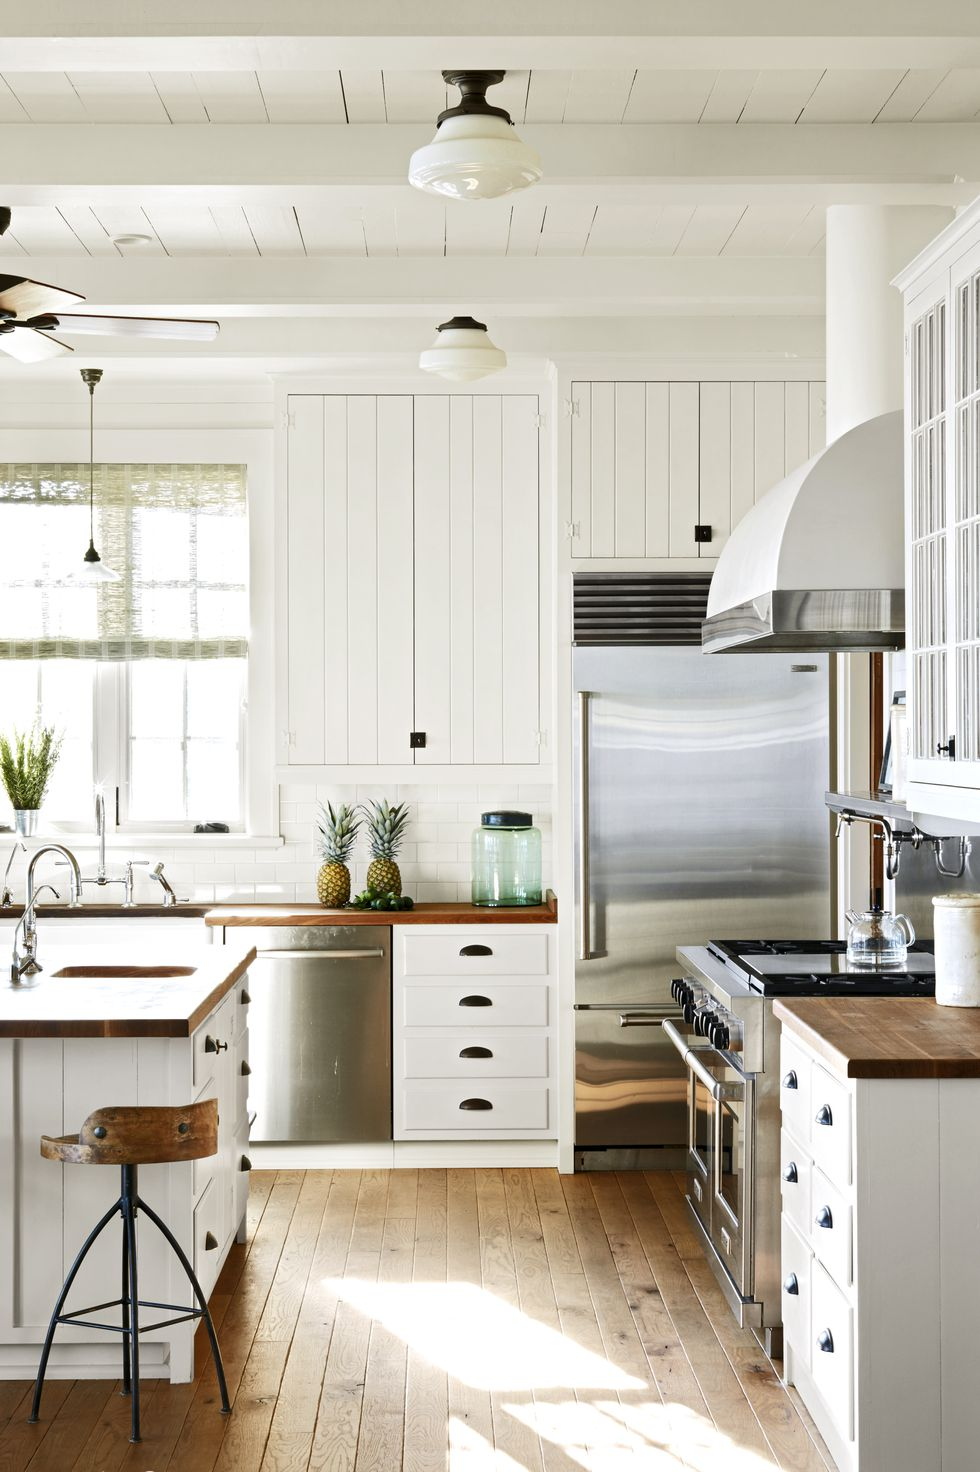 Kitchen with wood countertops and floors with white panel walls